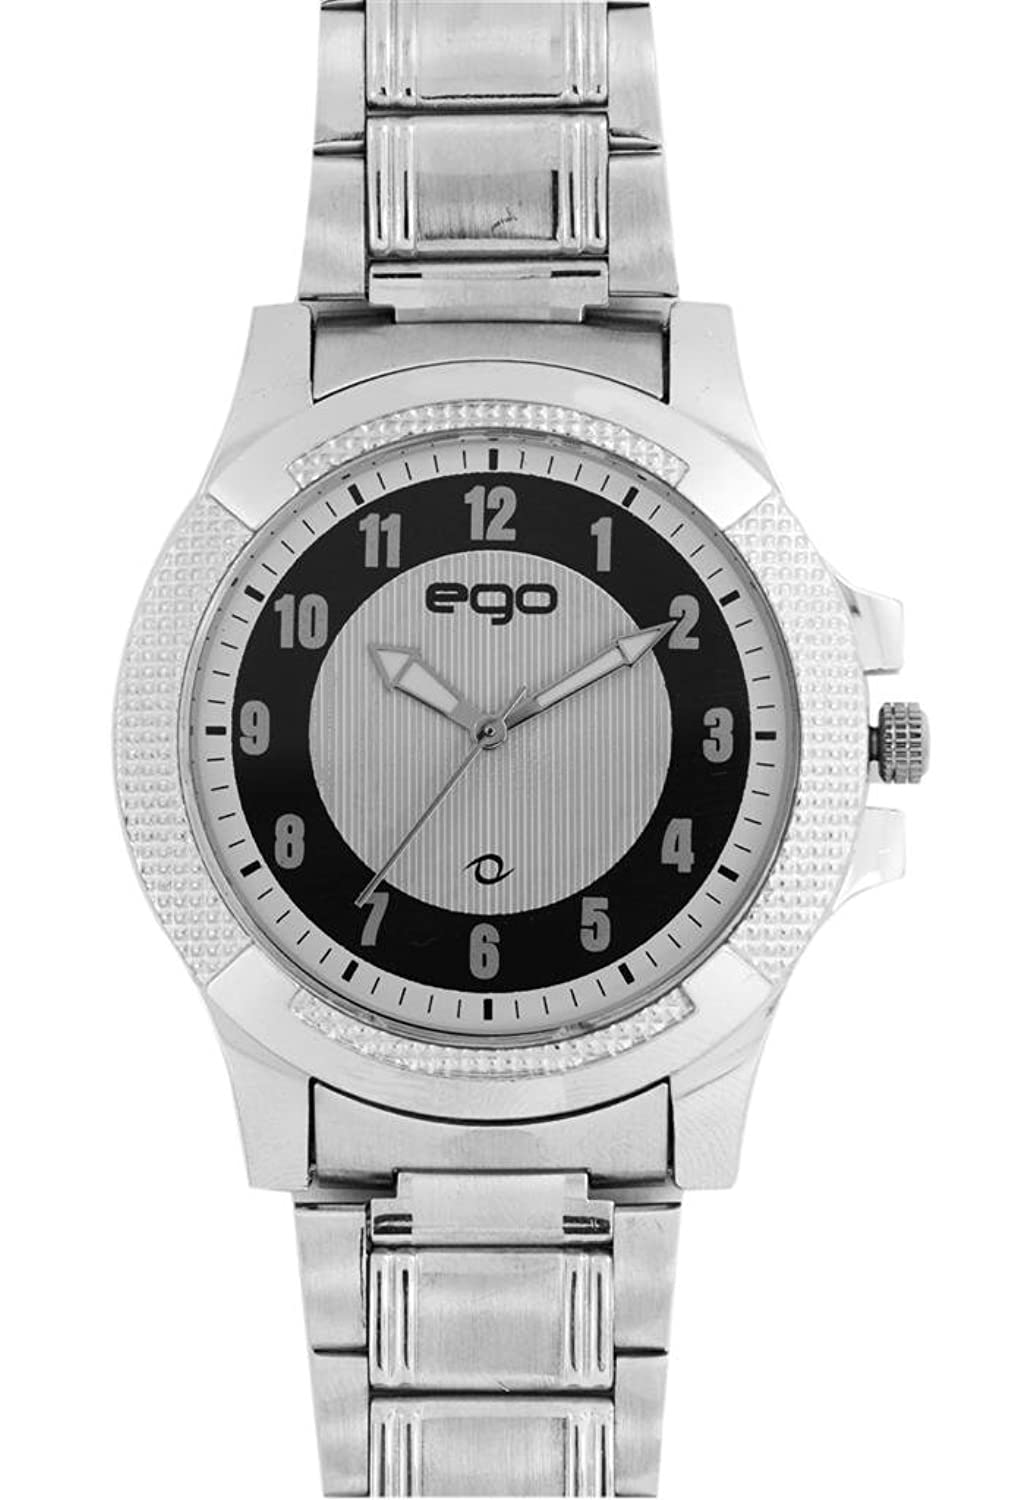 61Jk17MWnSL._UL1500_ Maxima Watches 50% off or more Rs. 199 – Amazon